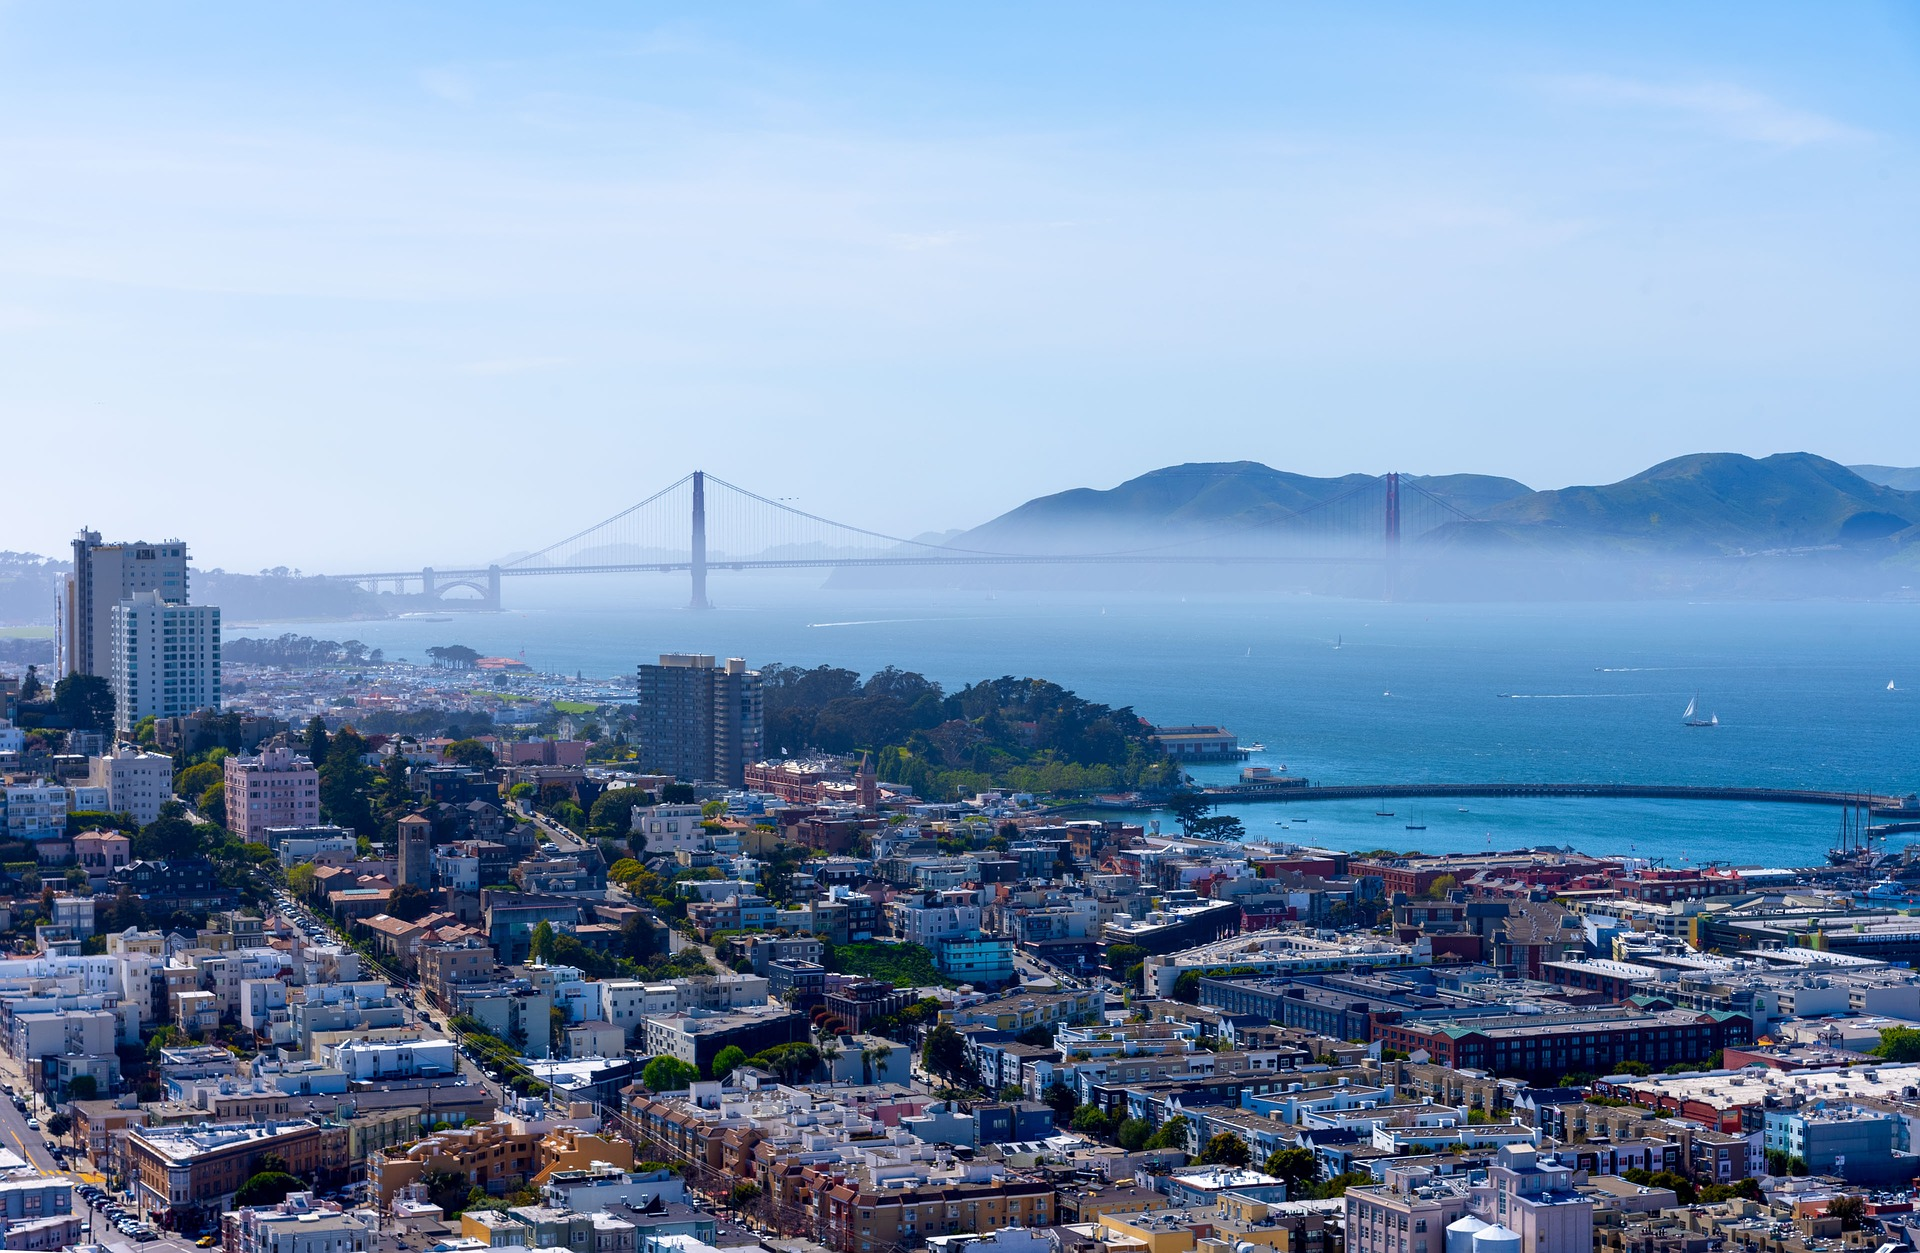 Magnetic Attractions to Visit in California - The San Francisco Bay Area, California Golden Gate Bridge